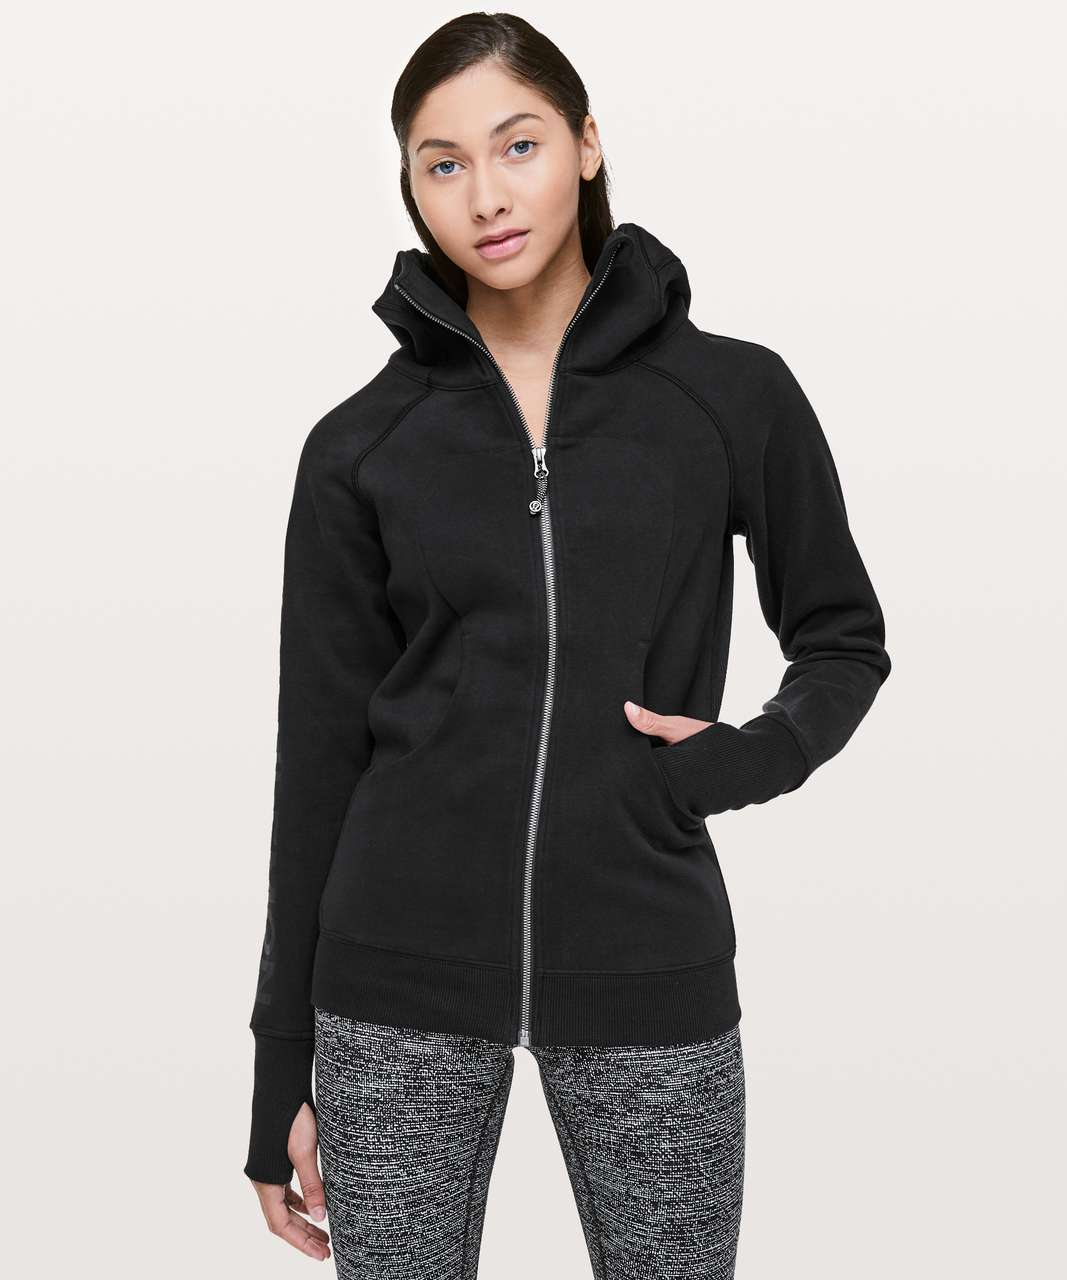 Lululemon Scuba Hoodie *20Y Collection Classic Cotton Fleece - Black